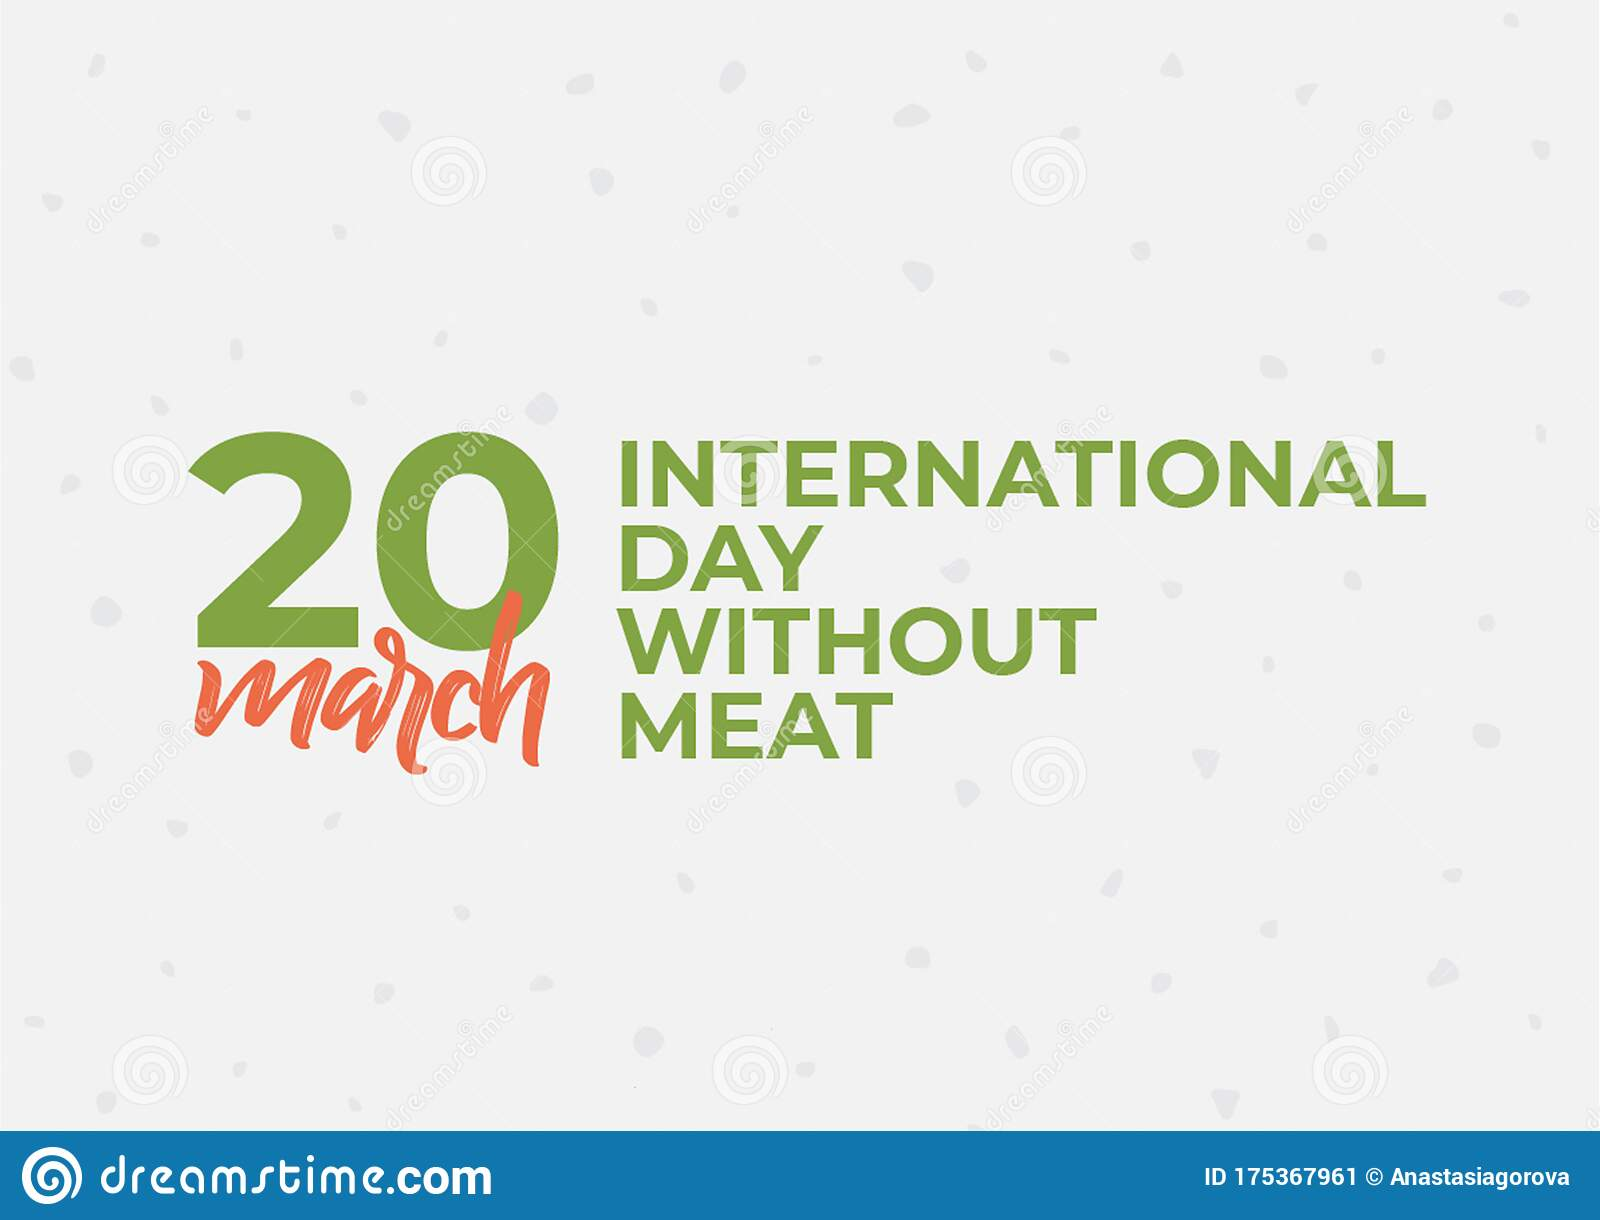 International Day Without Meat Healthy Vegetarian Food Stock Illustration Illustration Of Meat Health 175367961